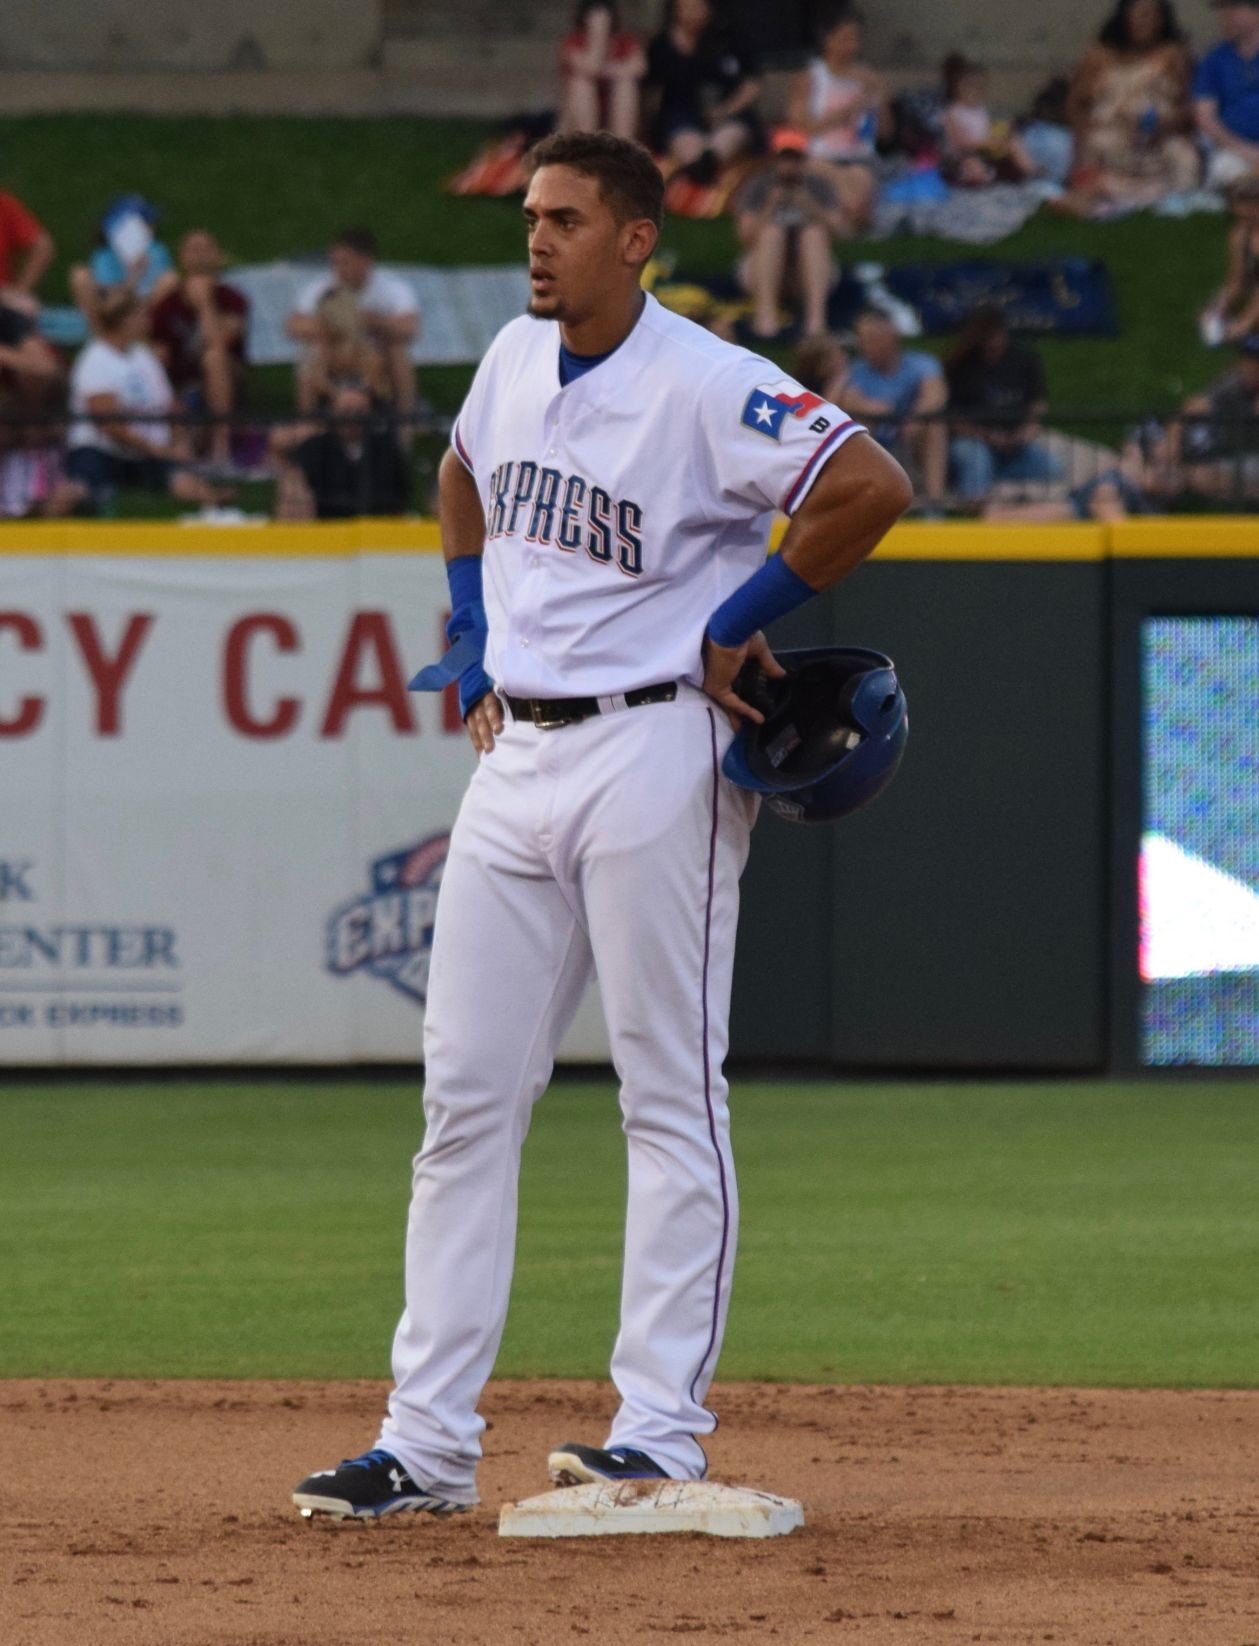 Ronald Guzman has two hits and one RBI as the Round Rock Express lost to the Memphis Redbirds 8-3 in the series finale Tuesday night at Dell Diamond.